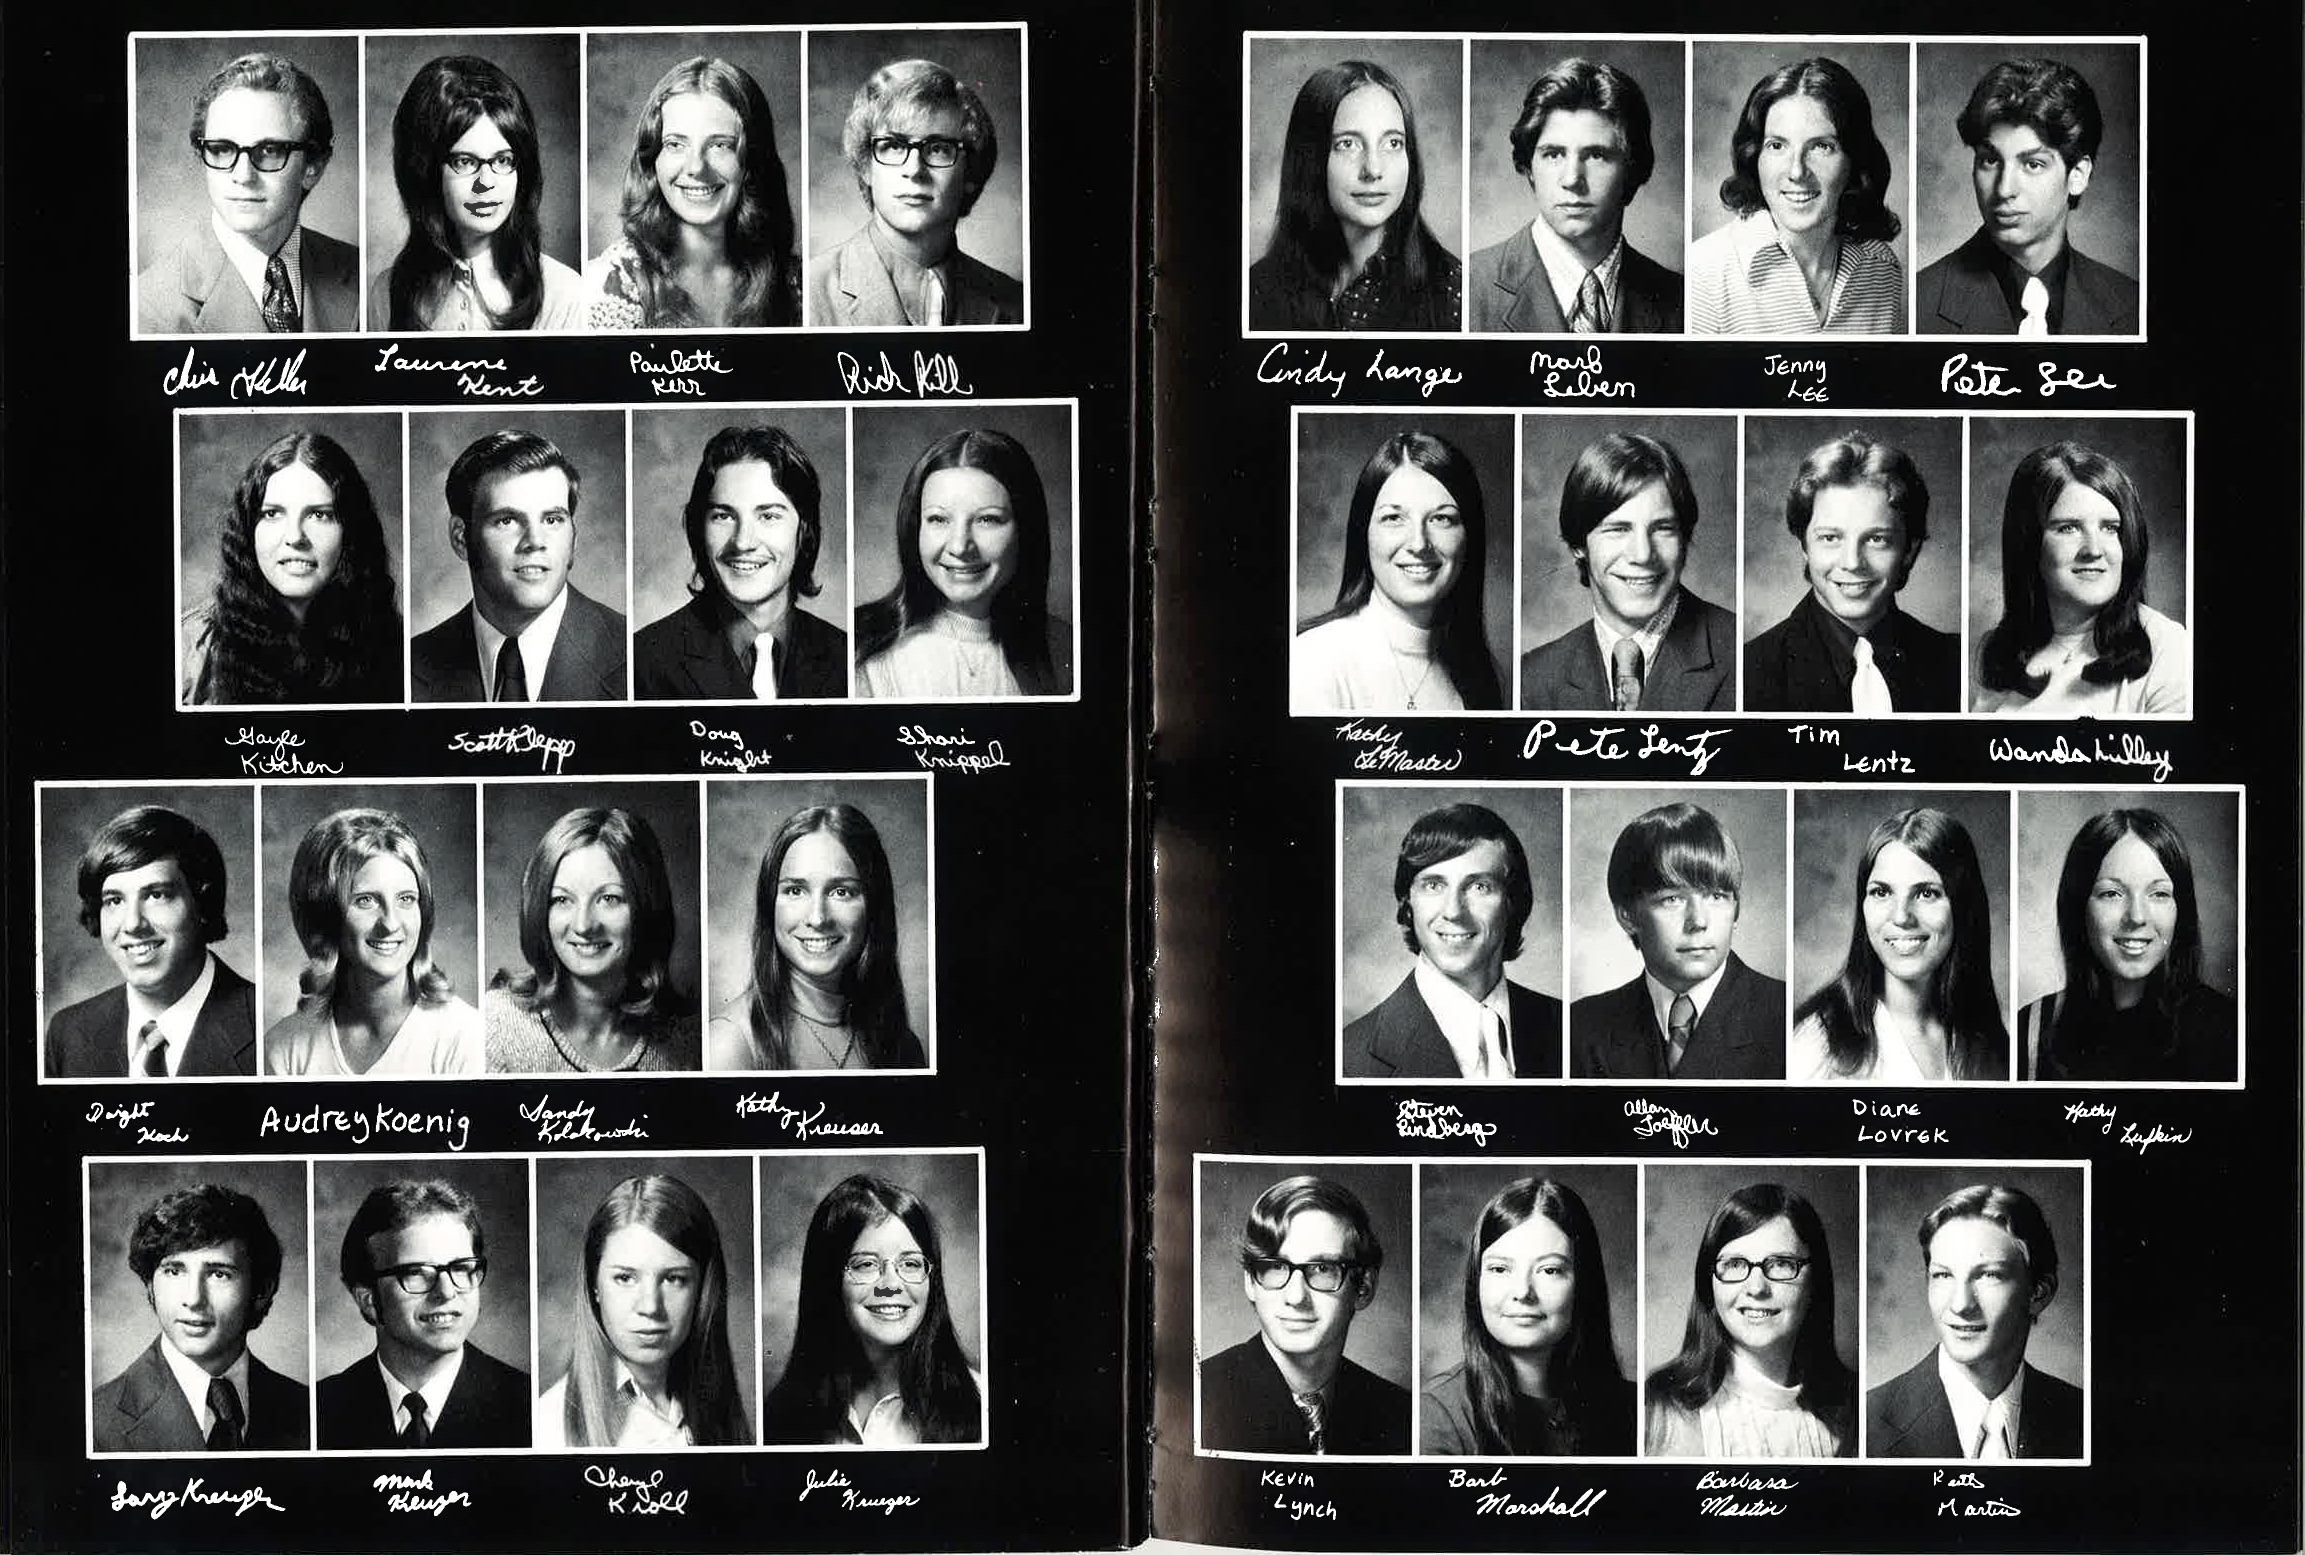 1973_Yearbook_66-67.jpg